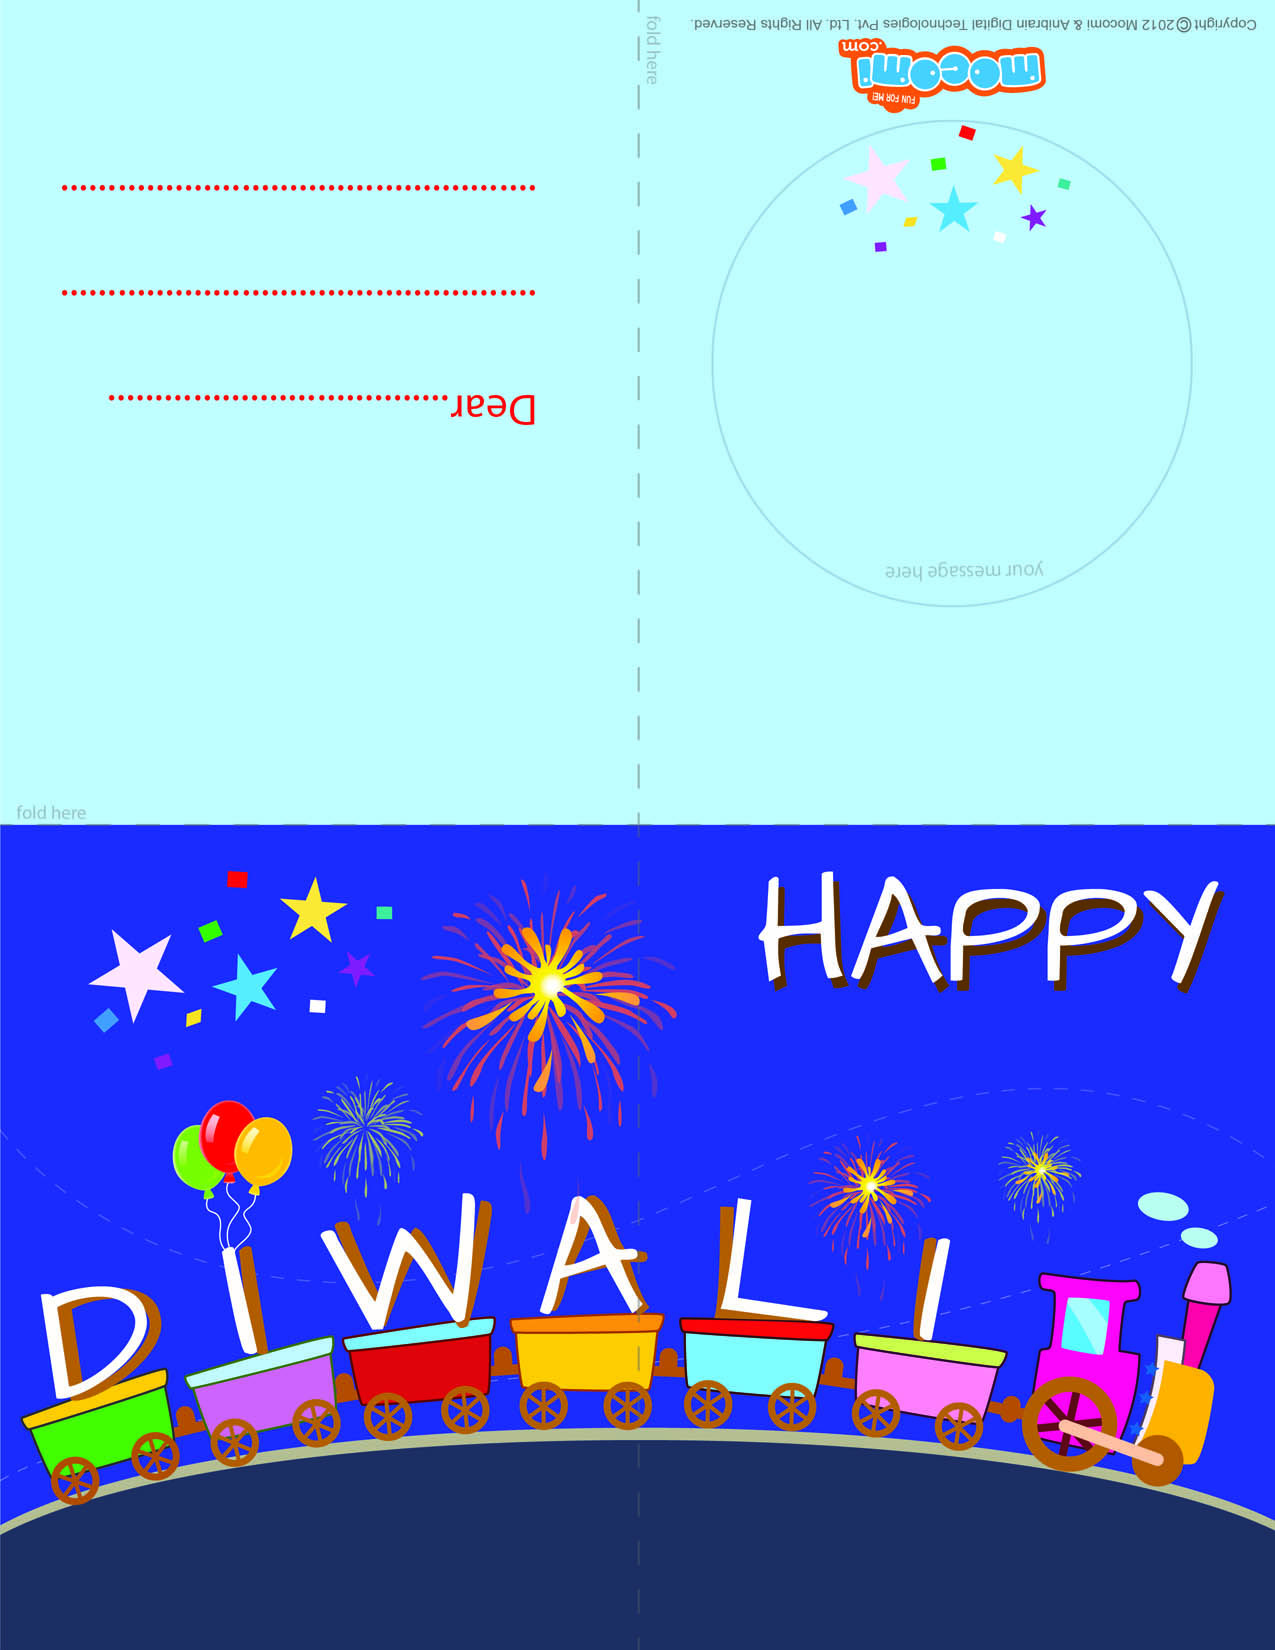 Toy train download this free diwaligreetingcard to send your near toy train diwali greeting card for kids m4hsunfo